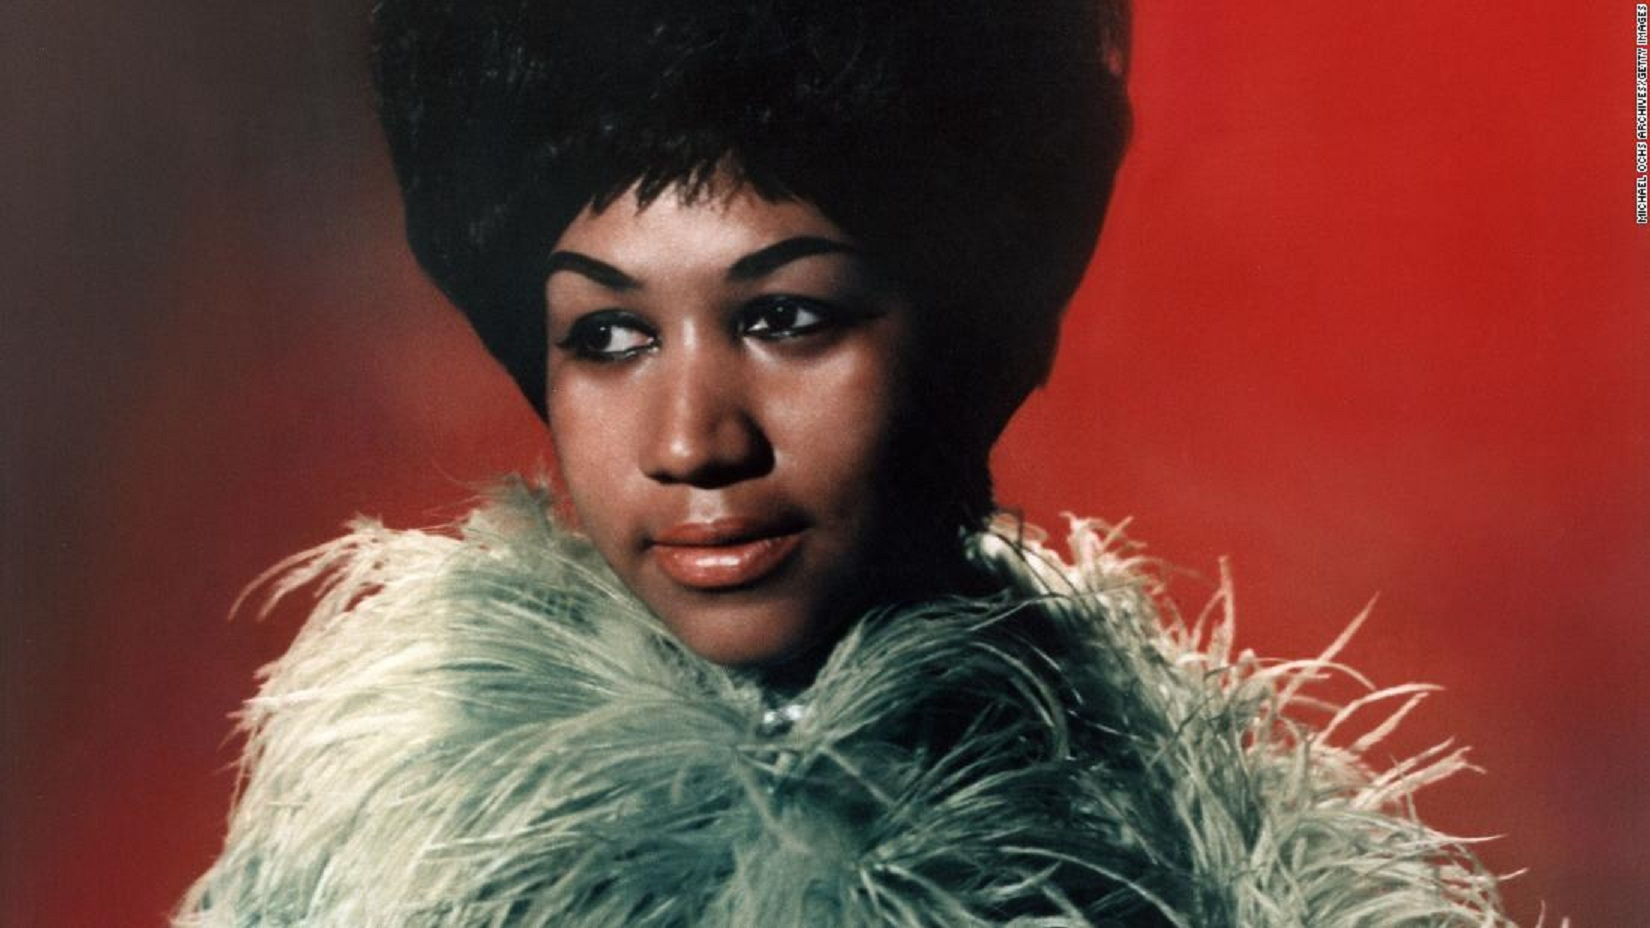 Poll: Vote for Aretha Franklin's Very Best Song among her Top 40 Billboard Hits!